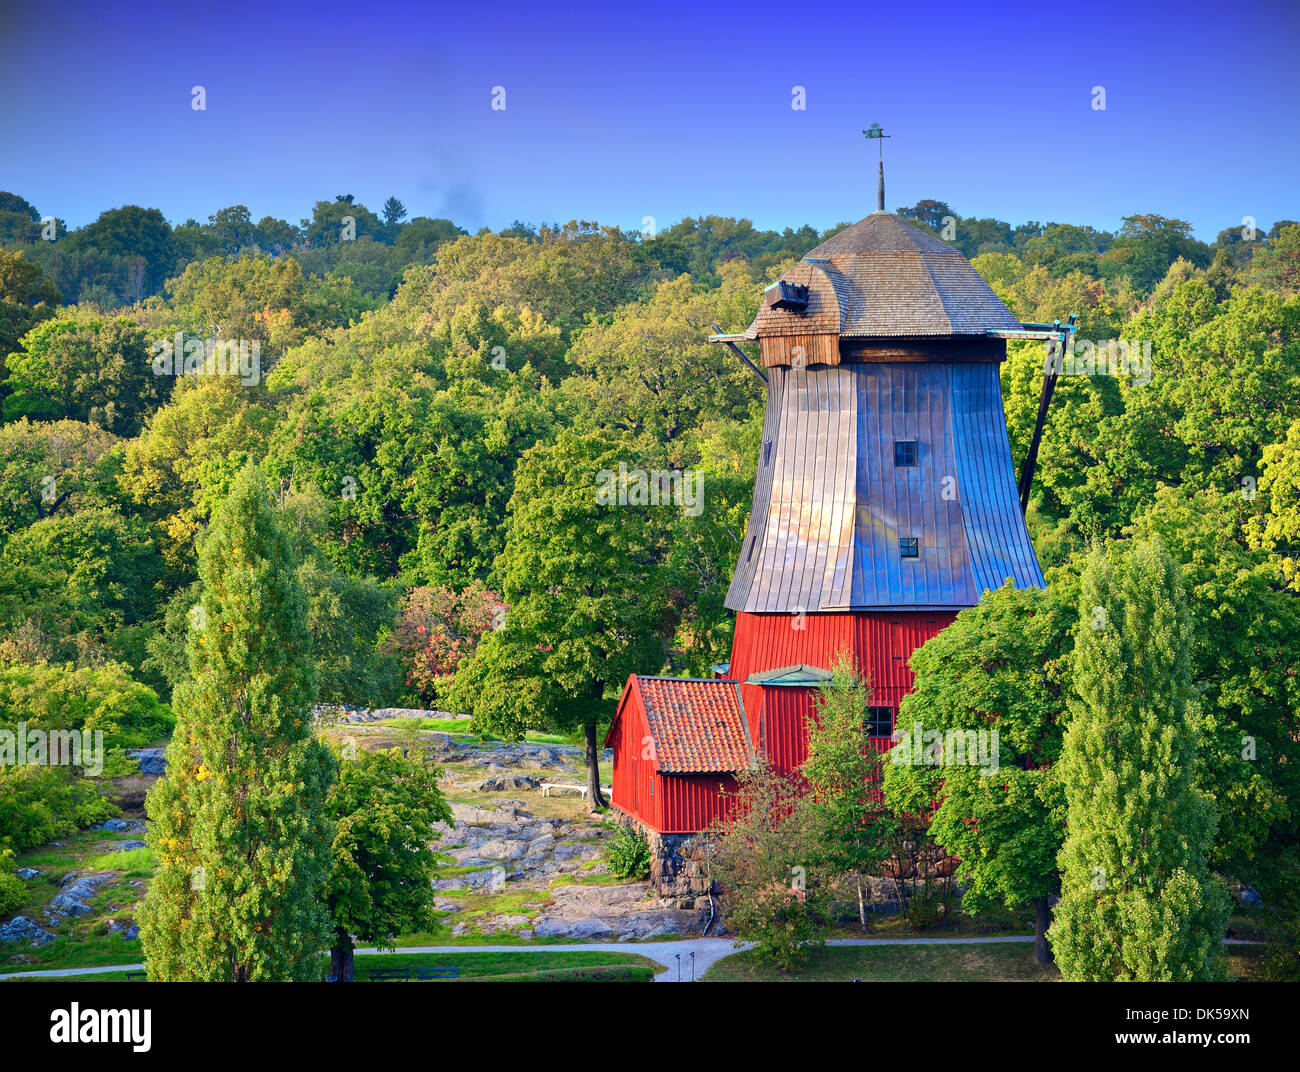 Old farm house in Helsinki, Finland. - Stock Image